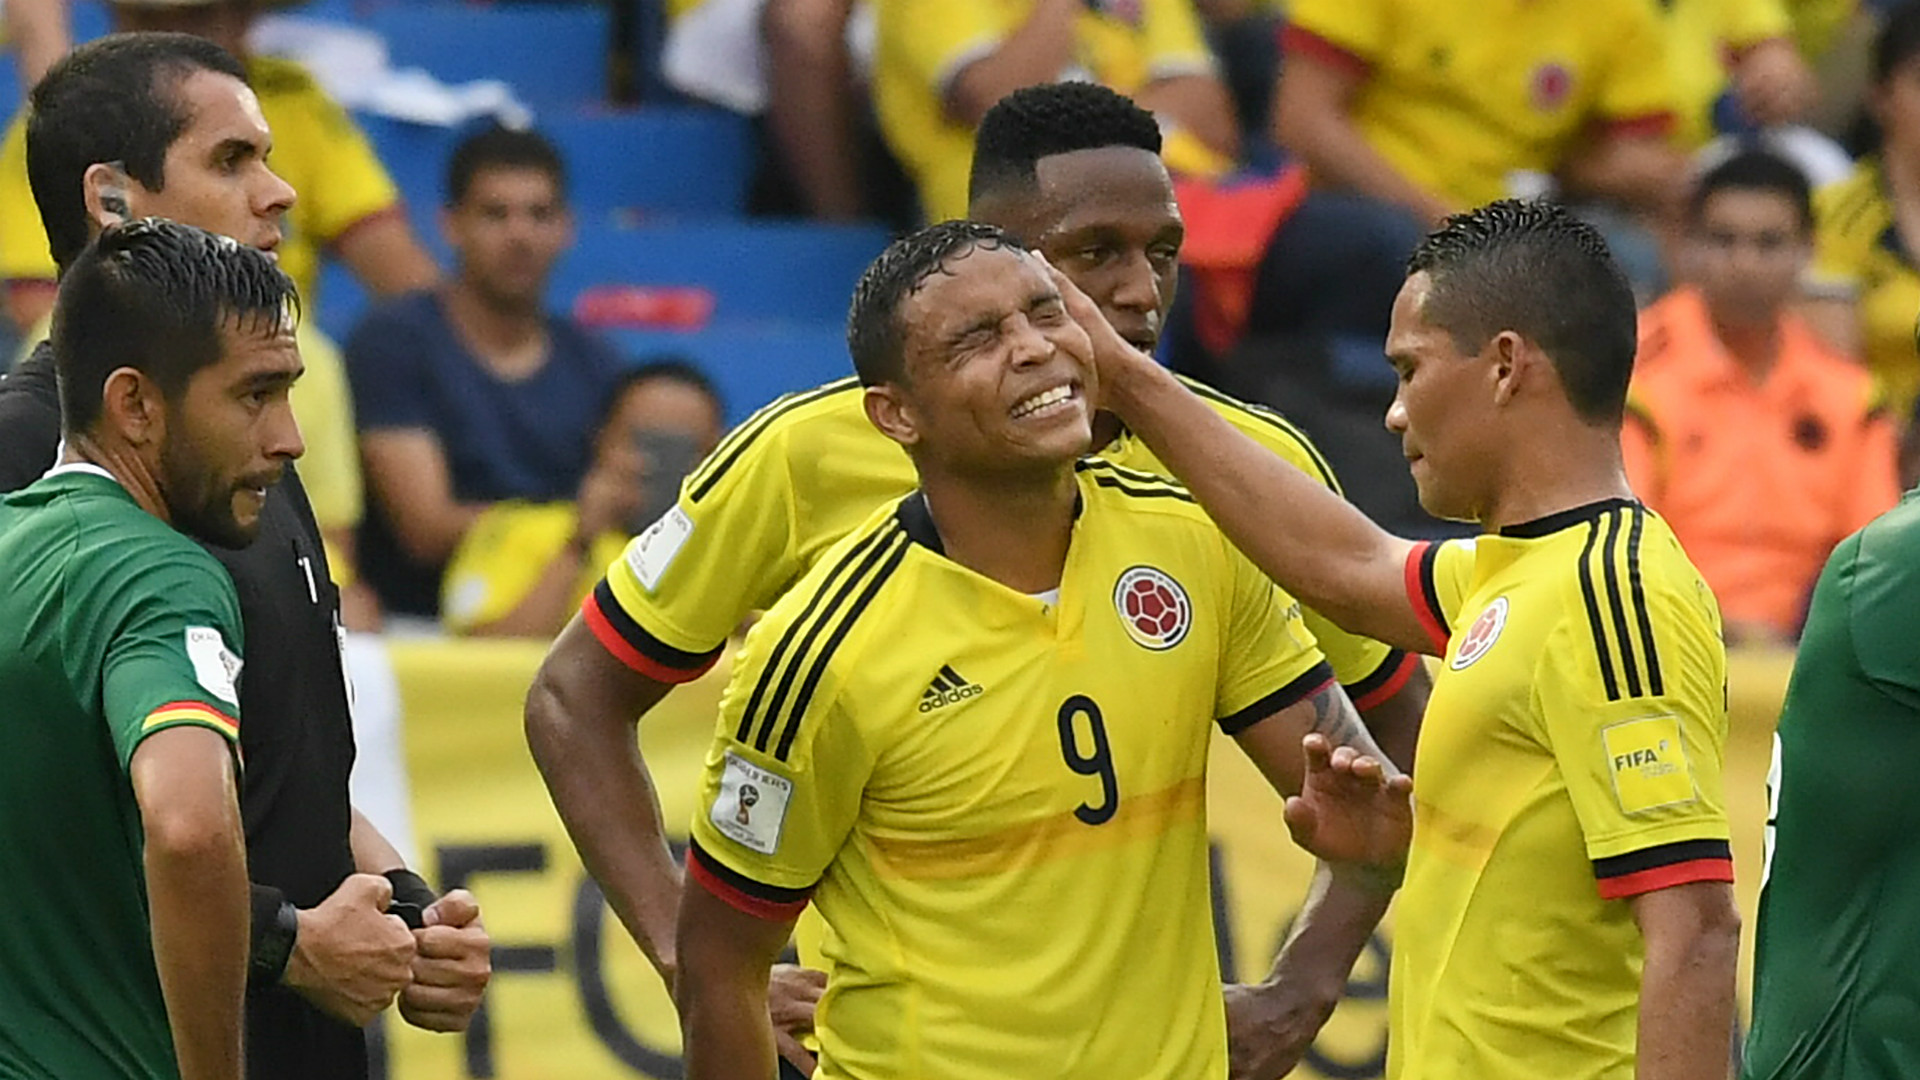 CARLOS BACCA | Colombia